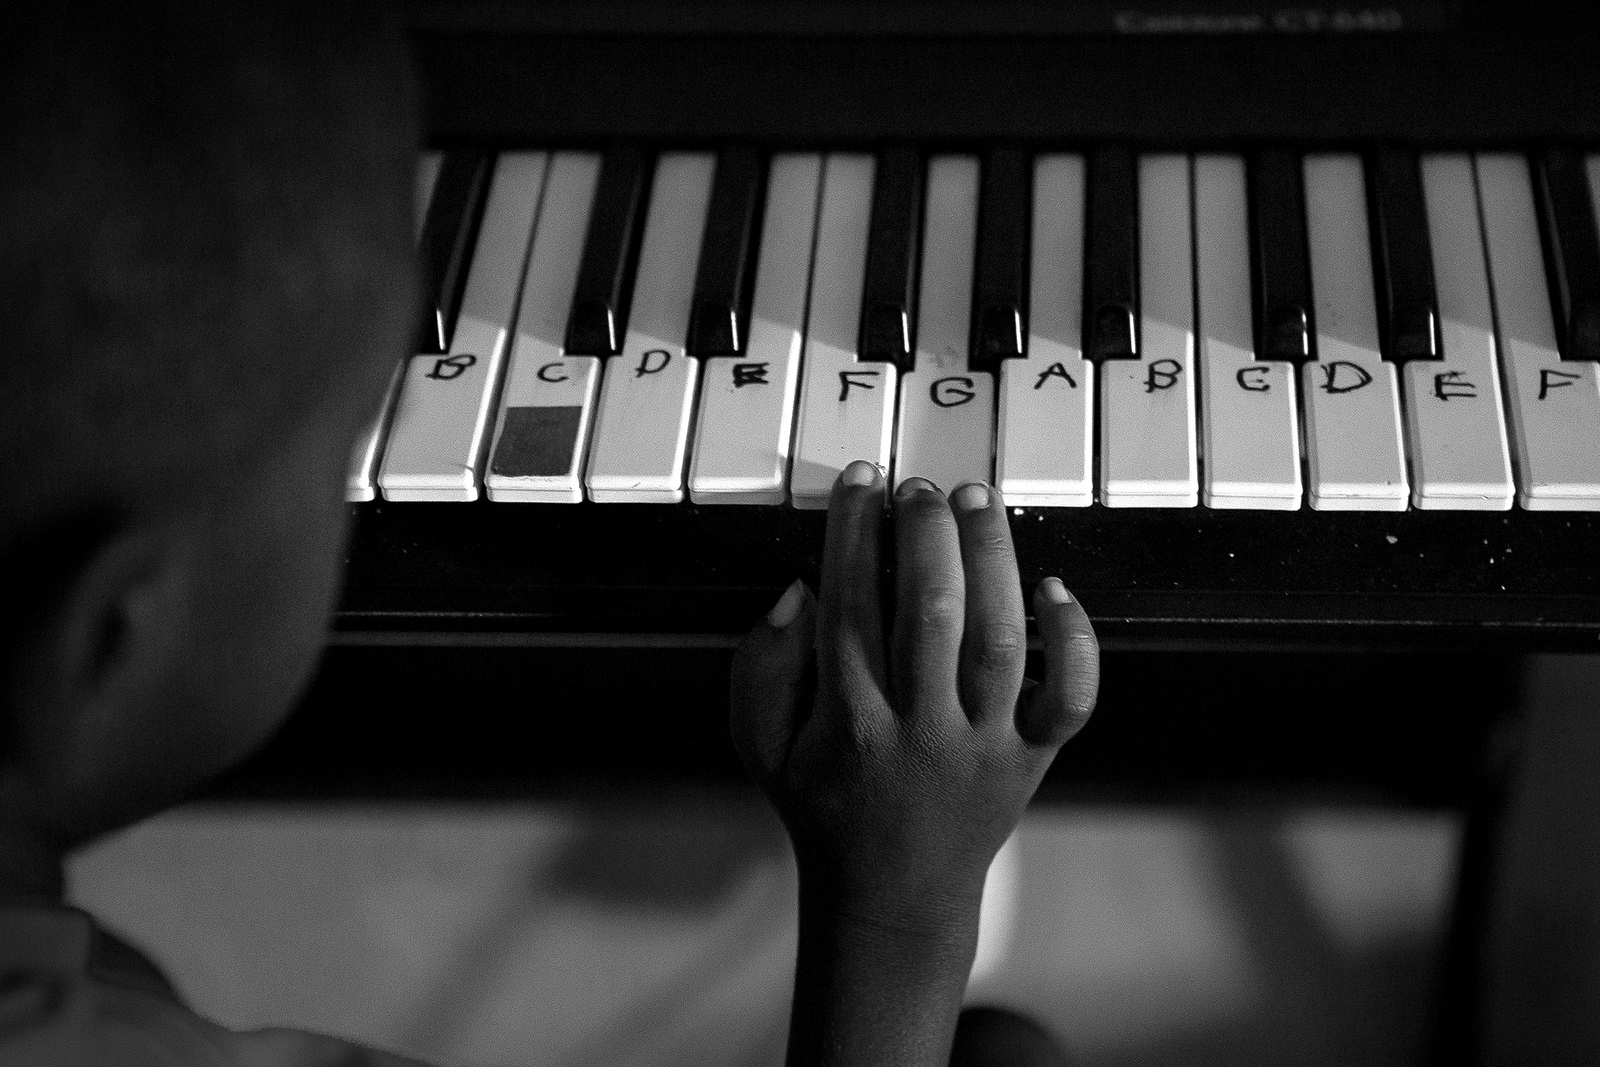 Six-year-old Odarius plays the keyboard and although he does not communicate very much verbally, he can play music and type complicated words and sentences on the computer. When complex medical terms started to appear on the family's computer screen, Odarius's parents each though the other adult must have been doing the typing.